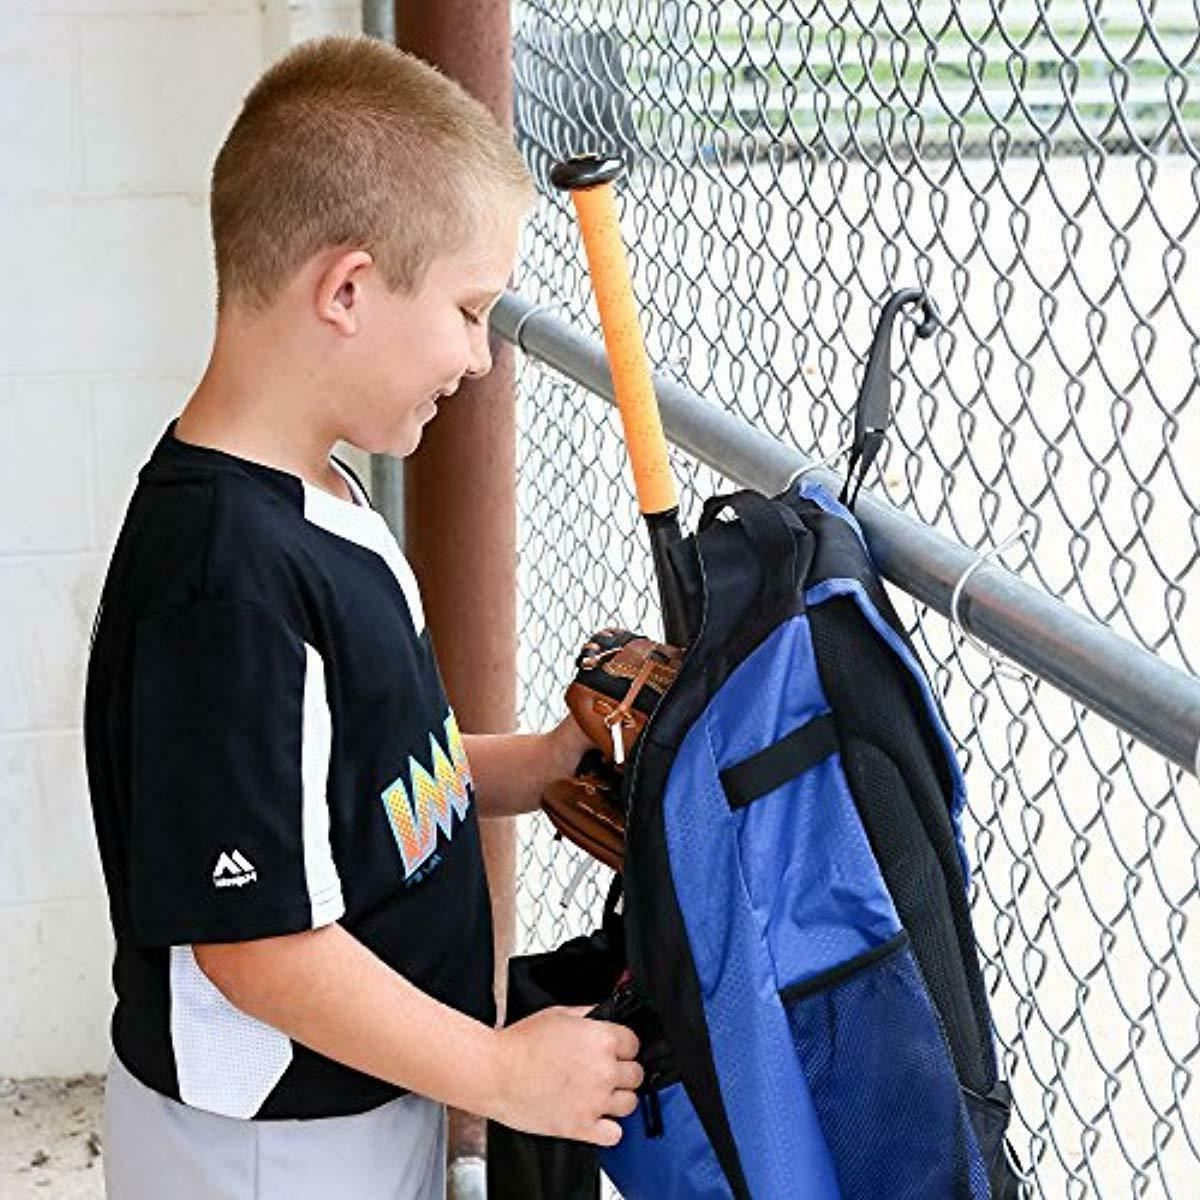 Athletico Youth Baseball Bag - Baseball, T-Ball Softball Equi